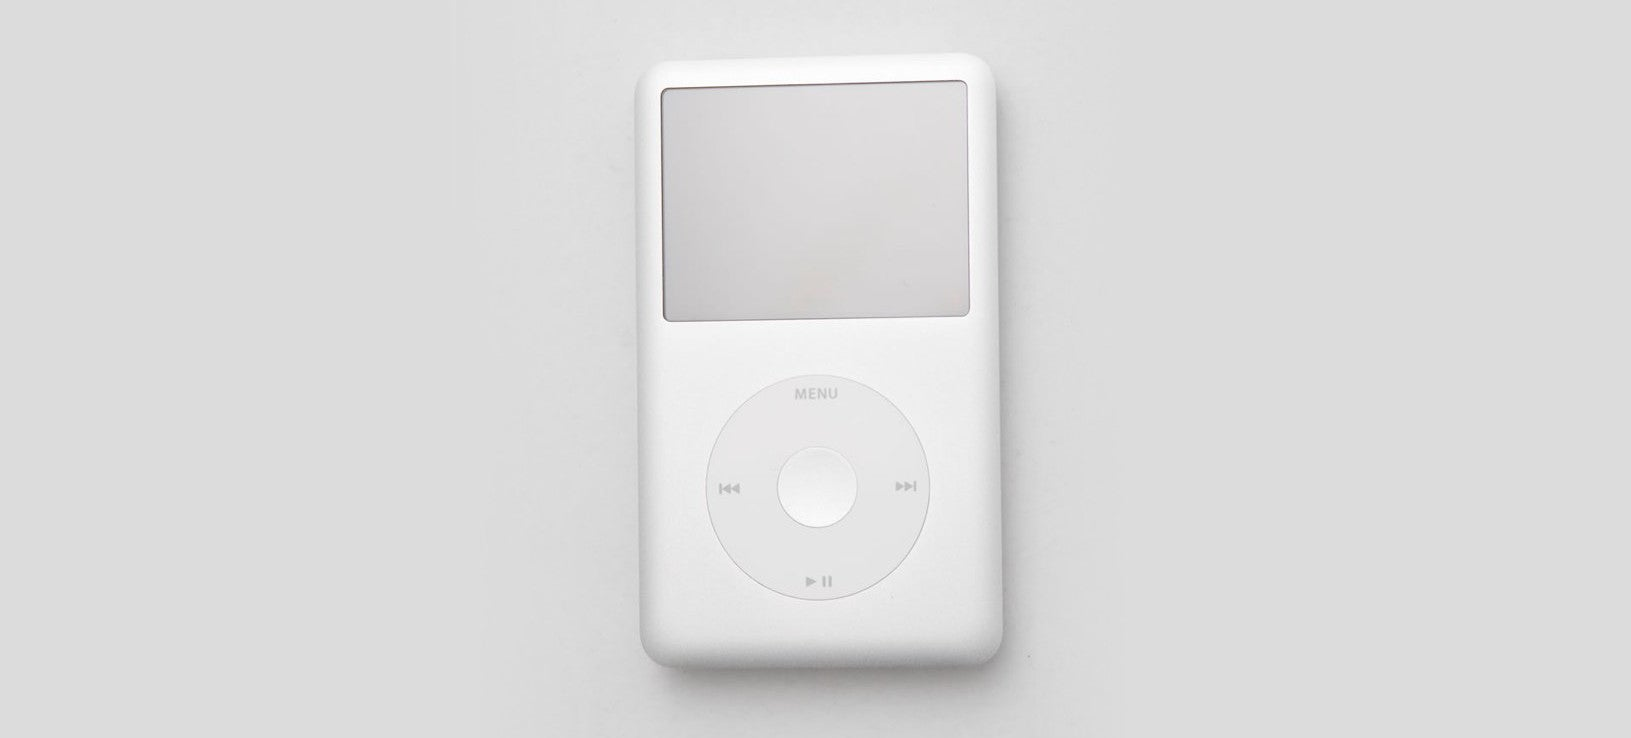 Apple Deleted Competitors' Songs From Your iPod